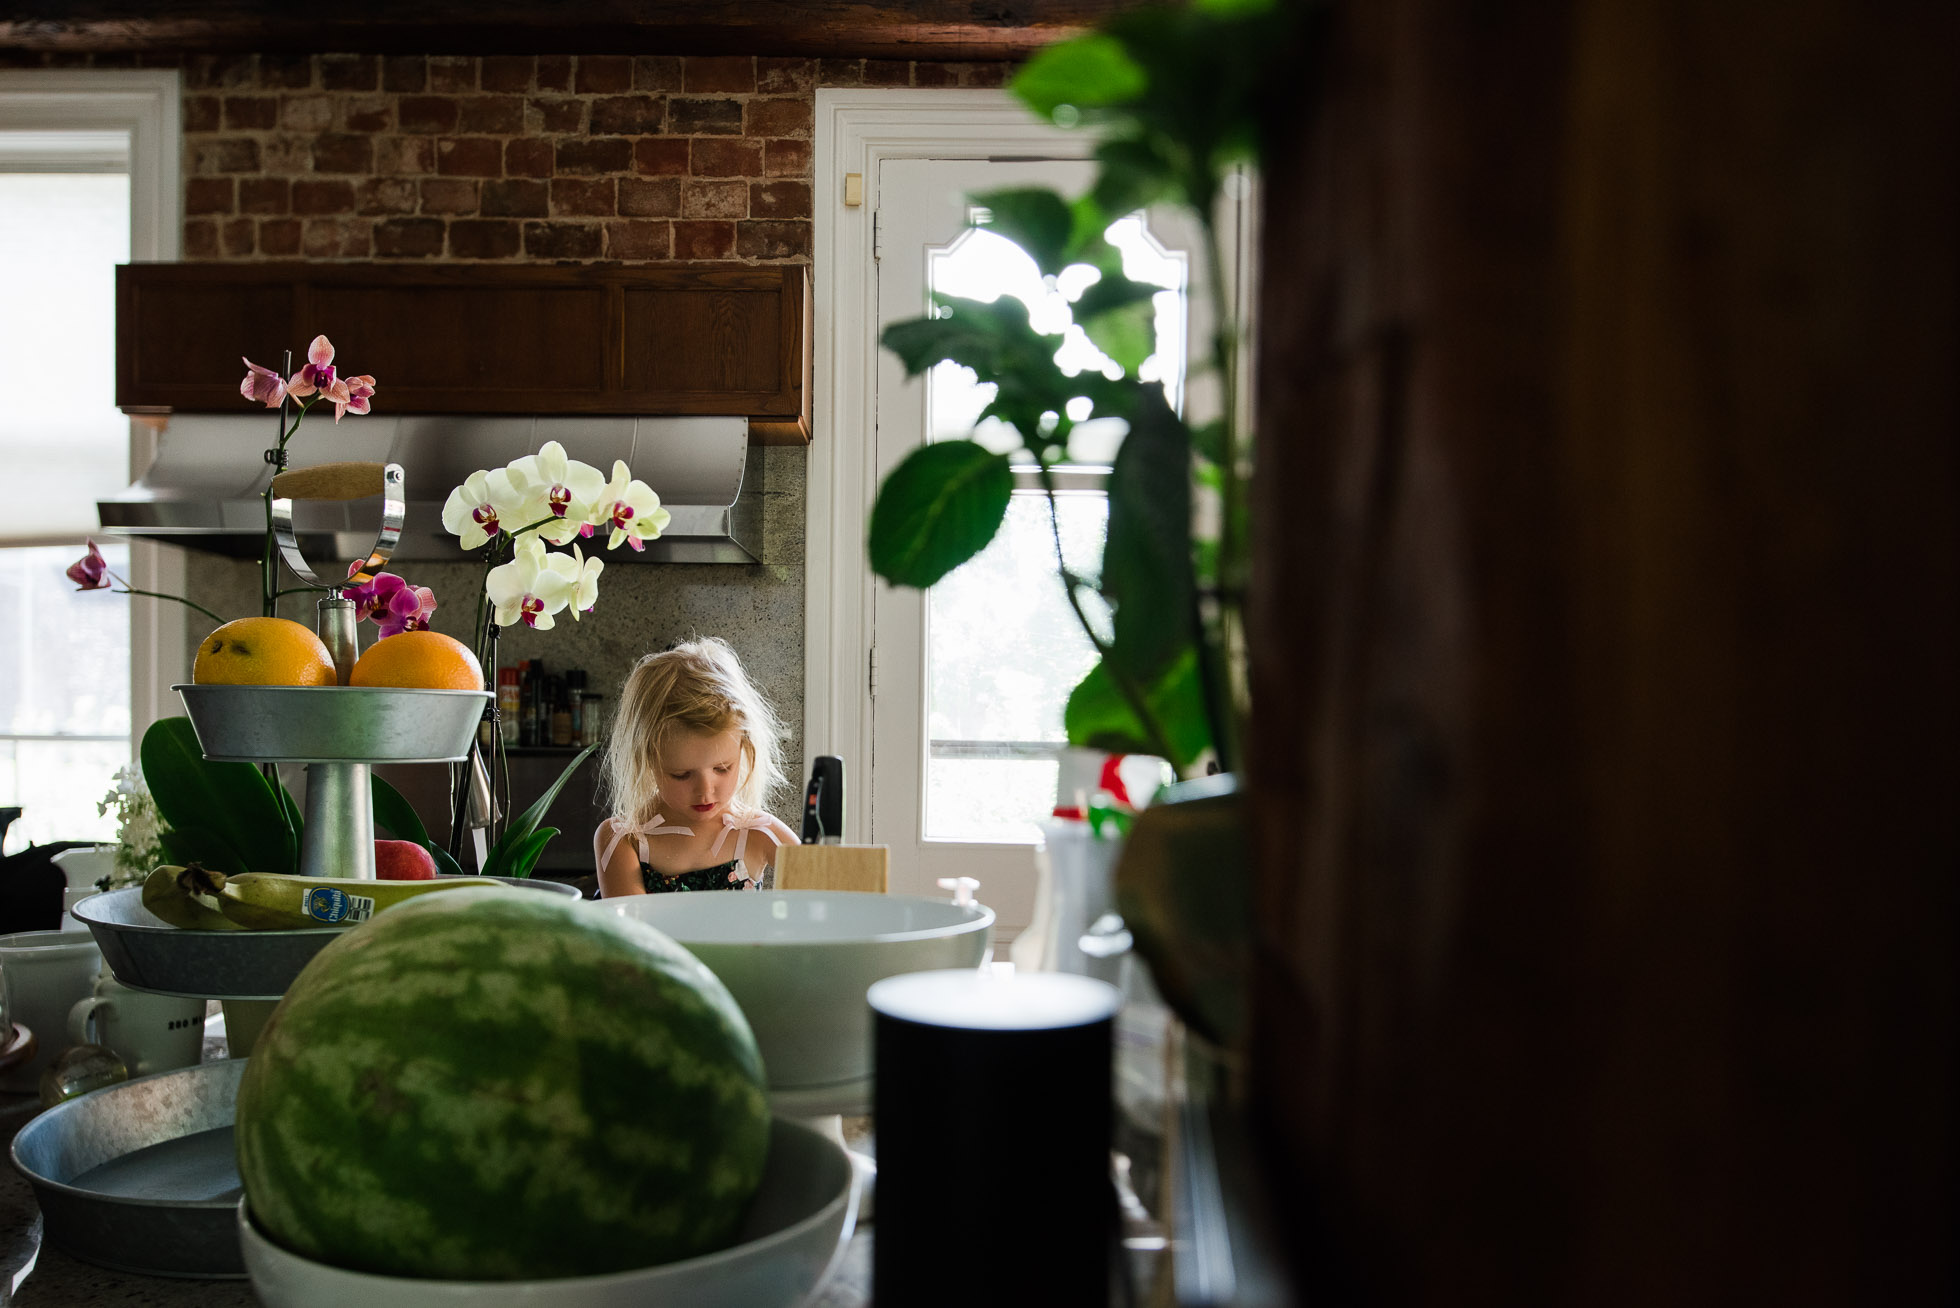 Everyday-Documentary-Tilt-Shift-Photo-of-Little-Girl-in-Kitchen-with-Colorful-Summer-Fruit-and-Flowers-by-Sarah-Wilkerson-